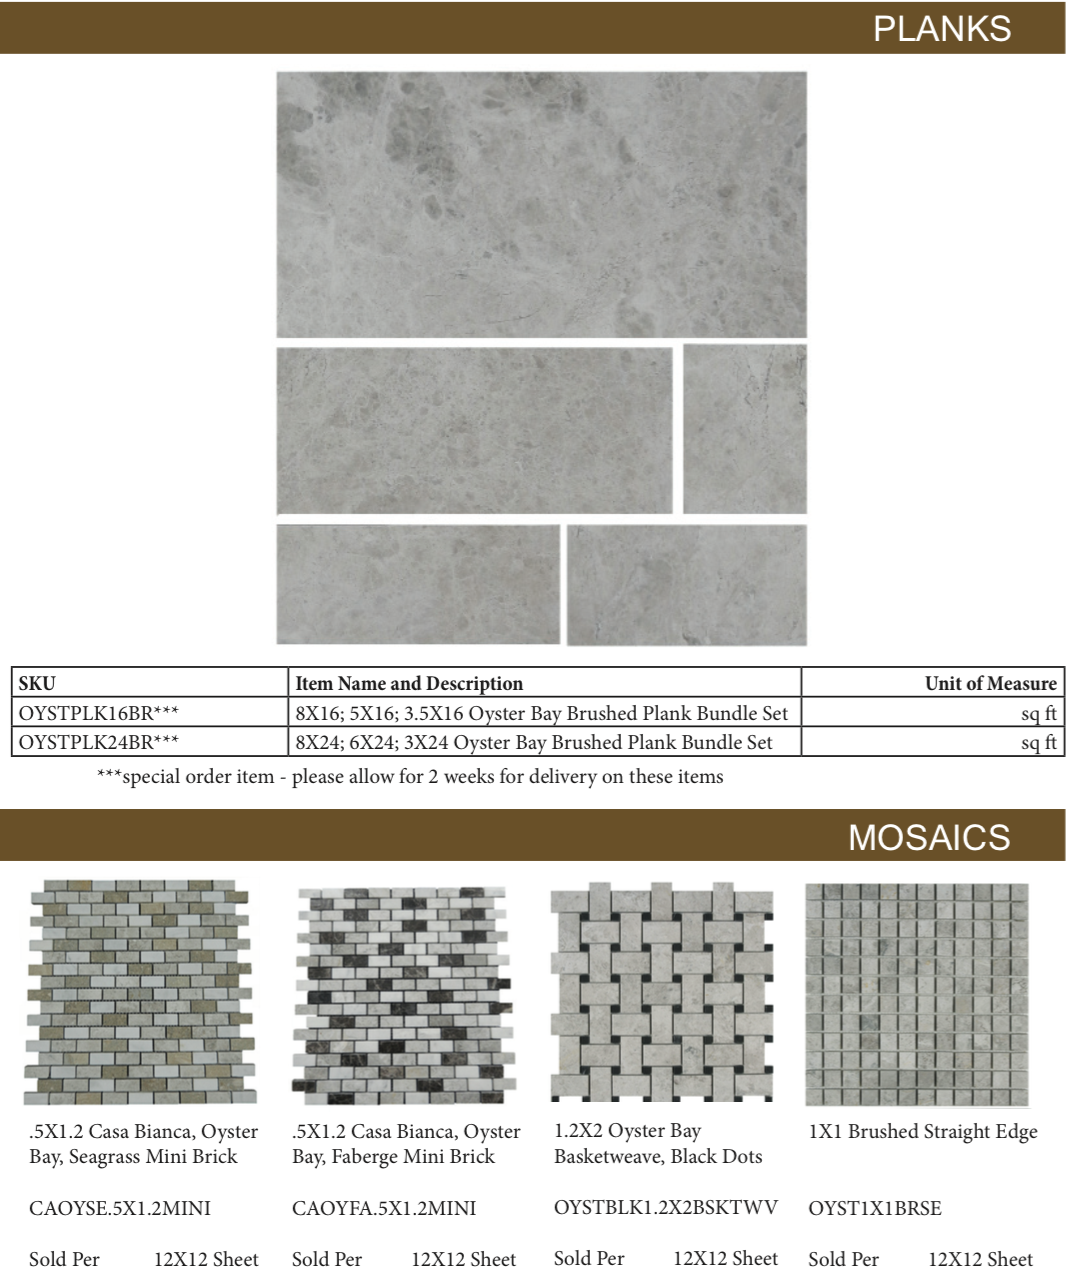 Oyster-bay-Marble-Planks-and-Mosaics